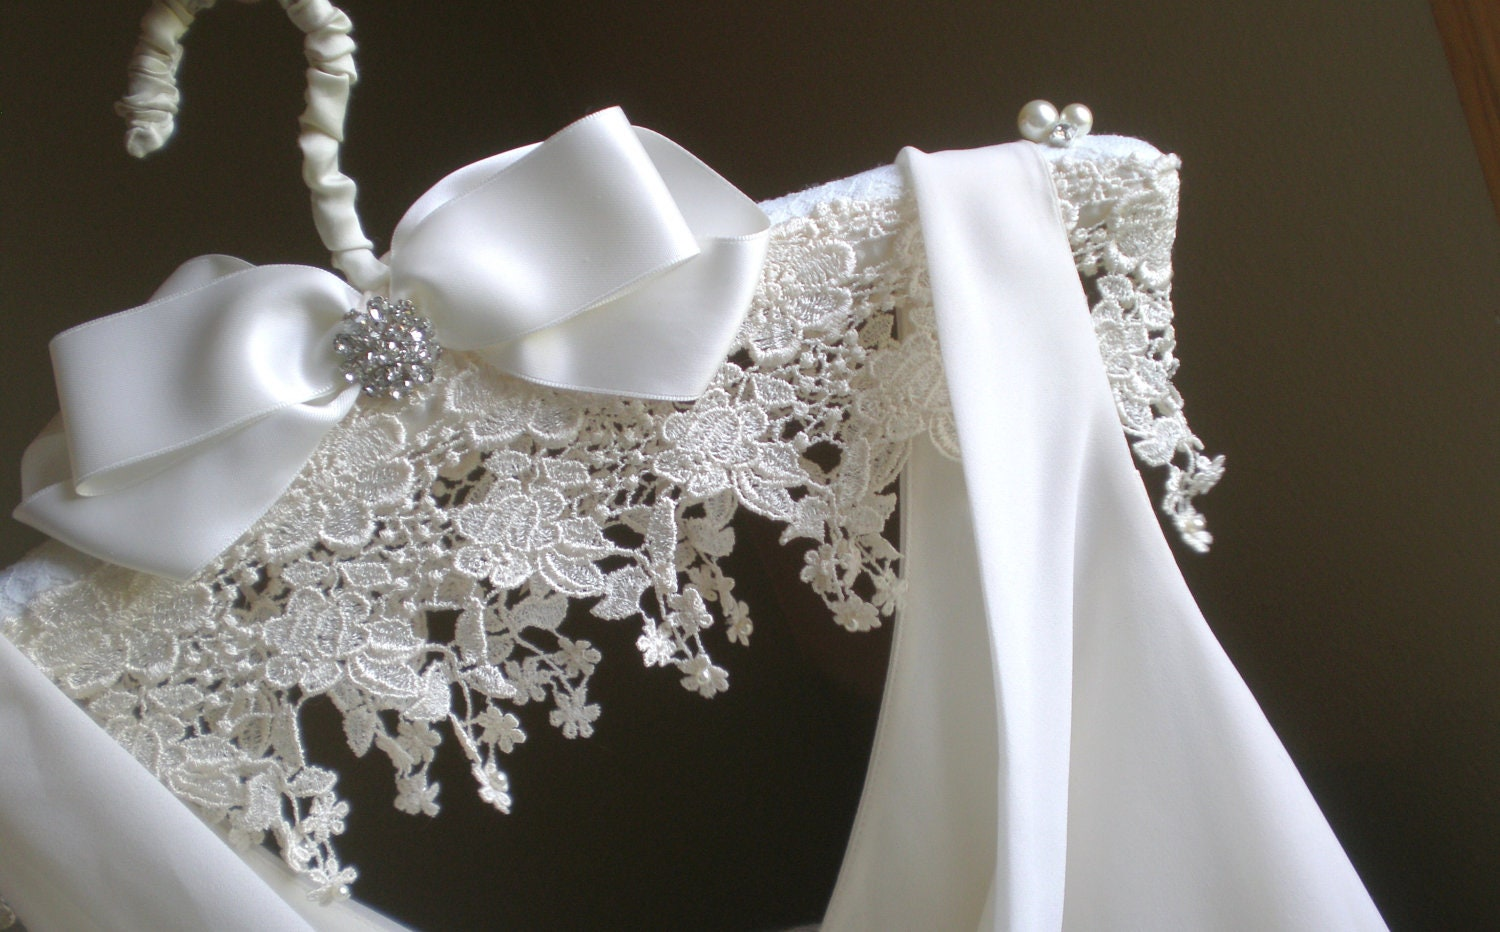 Padded Wedding Dress Hanger Jeweled Lace And Satin